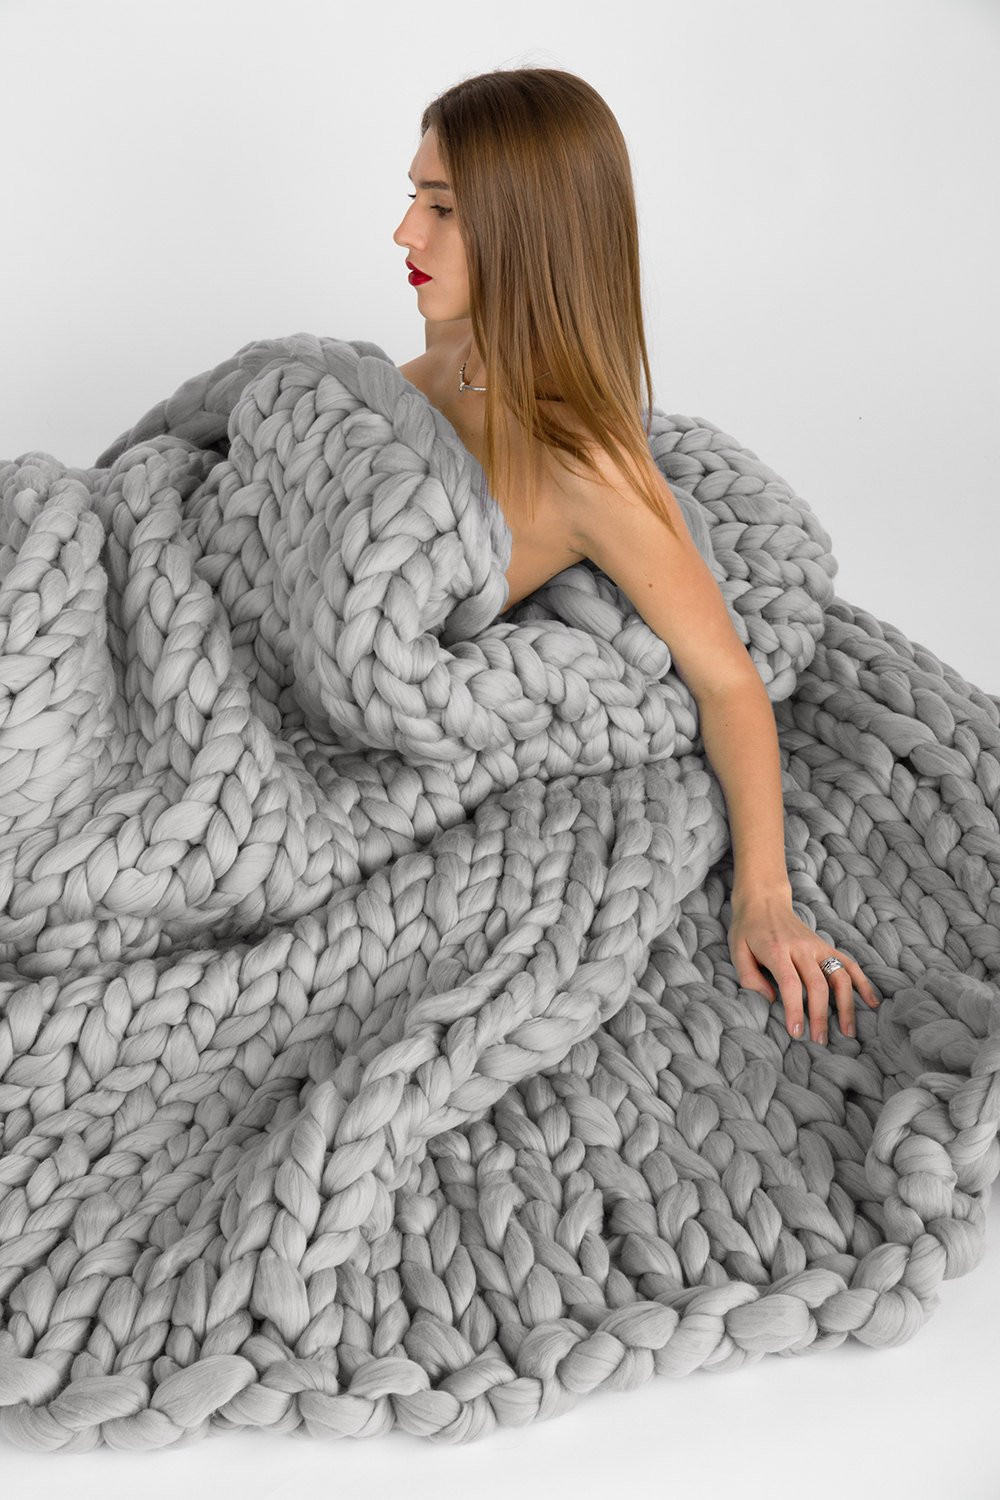 Chunky Knit Throw Fresh Super Chunky Knit Blanket Wool Blanket Knitted Blanket Of Superb 50 Pics Chunky Knit Throw